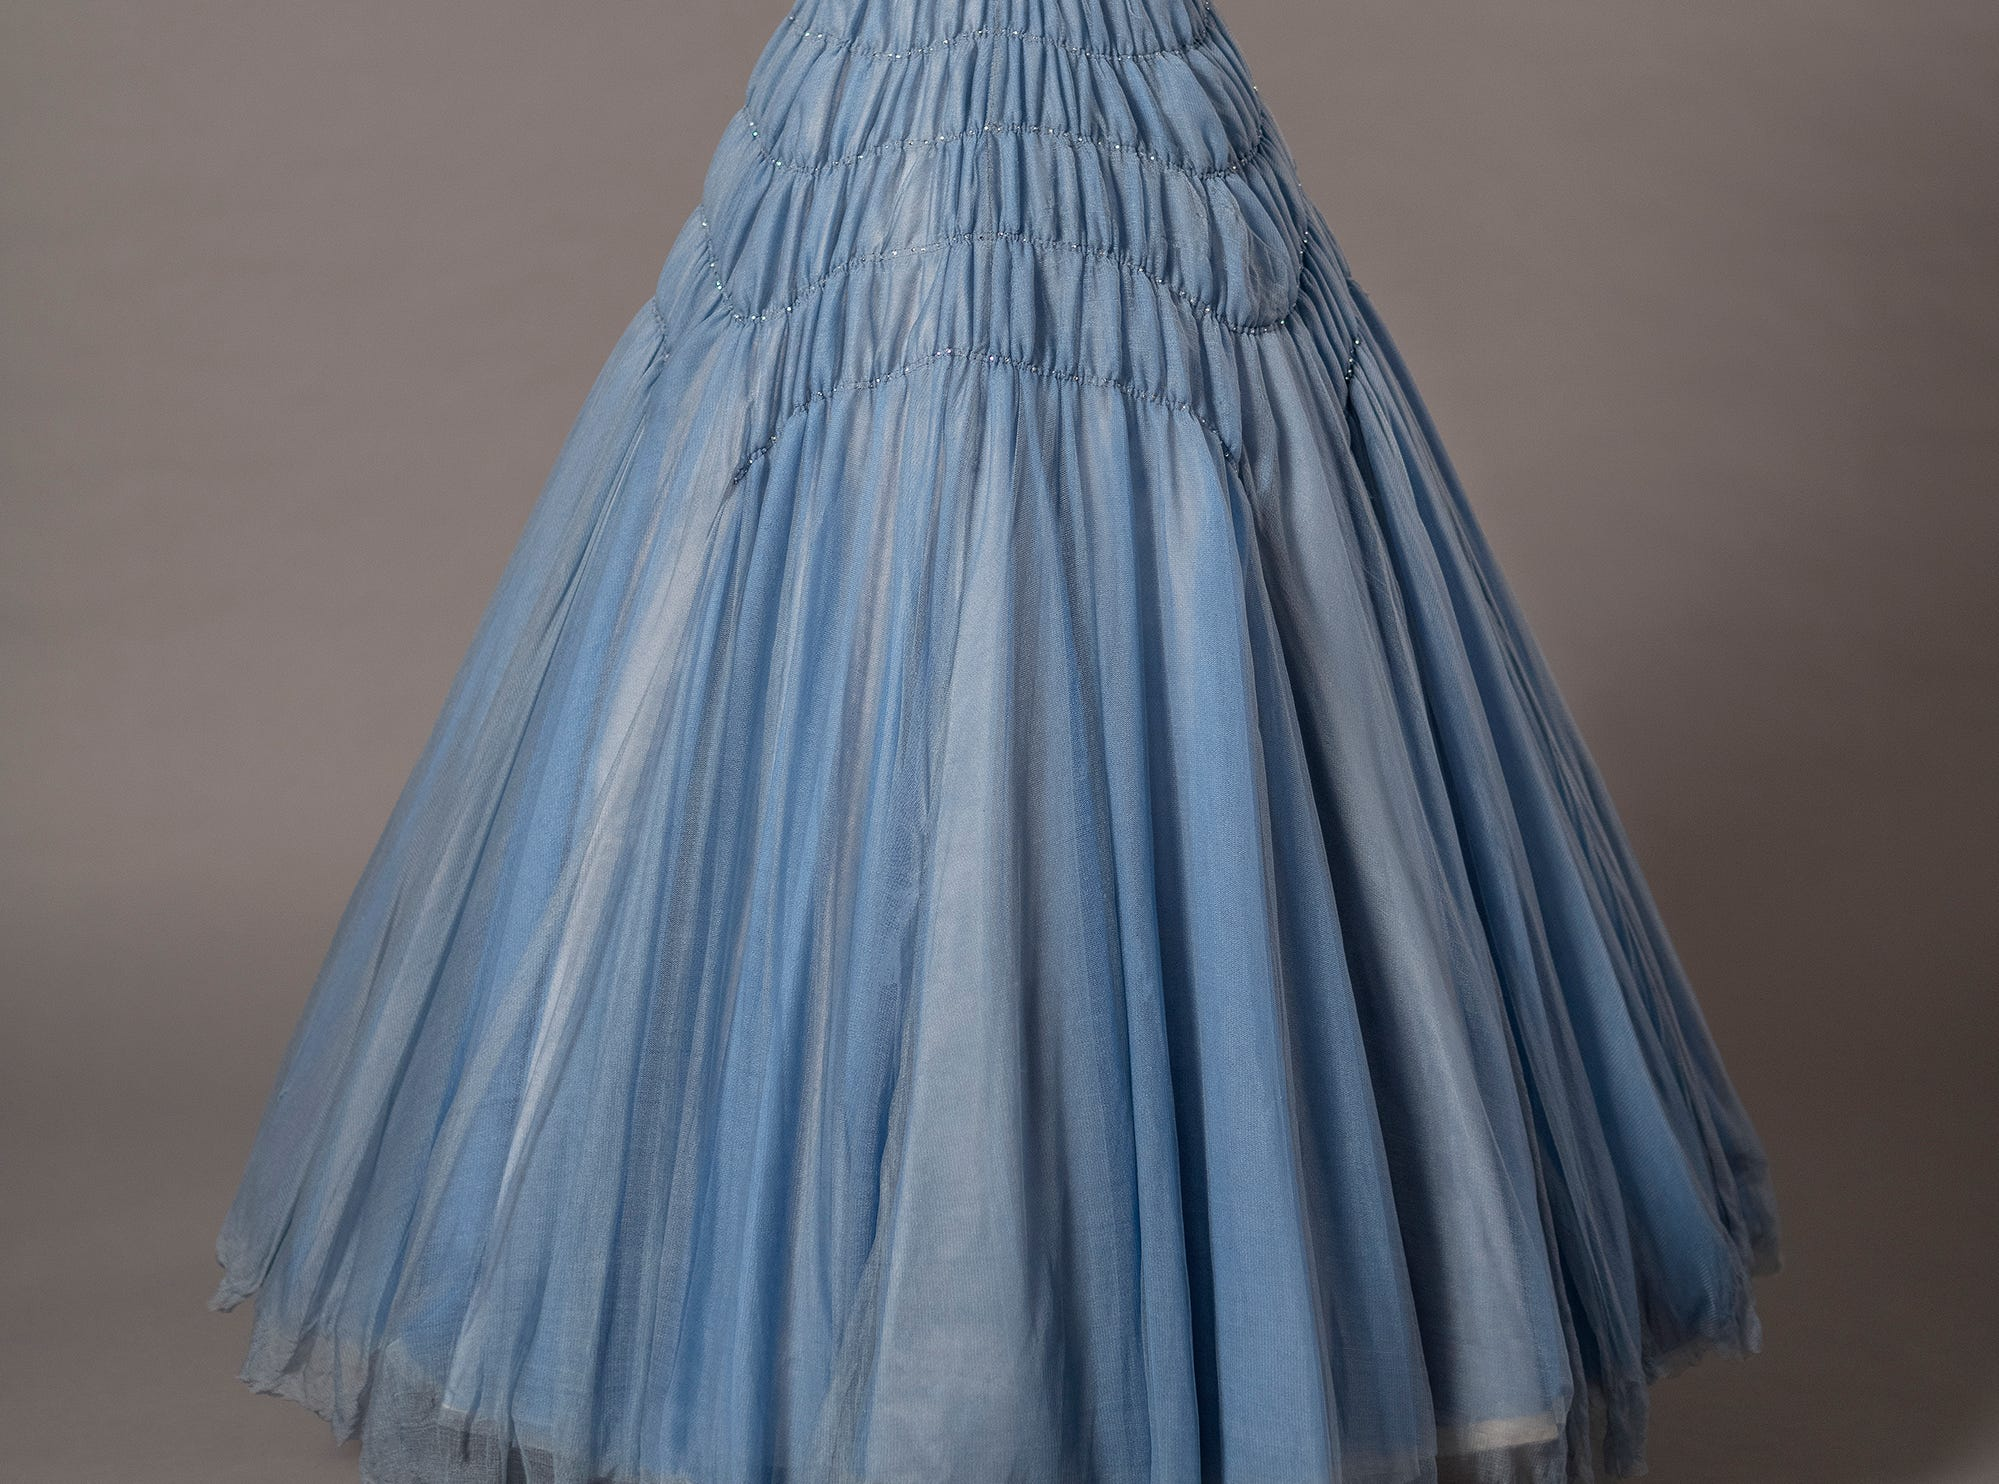 Jane Petrie's dress for Claire Foy is a close copy of the one Queen Elizabeth wore to meet the Kennedys in 1961.